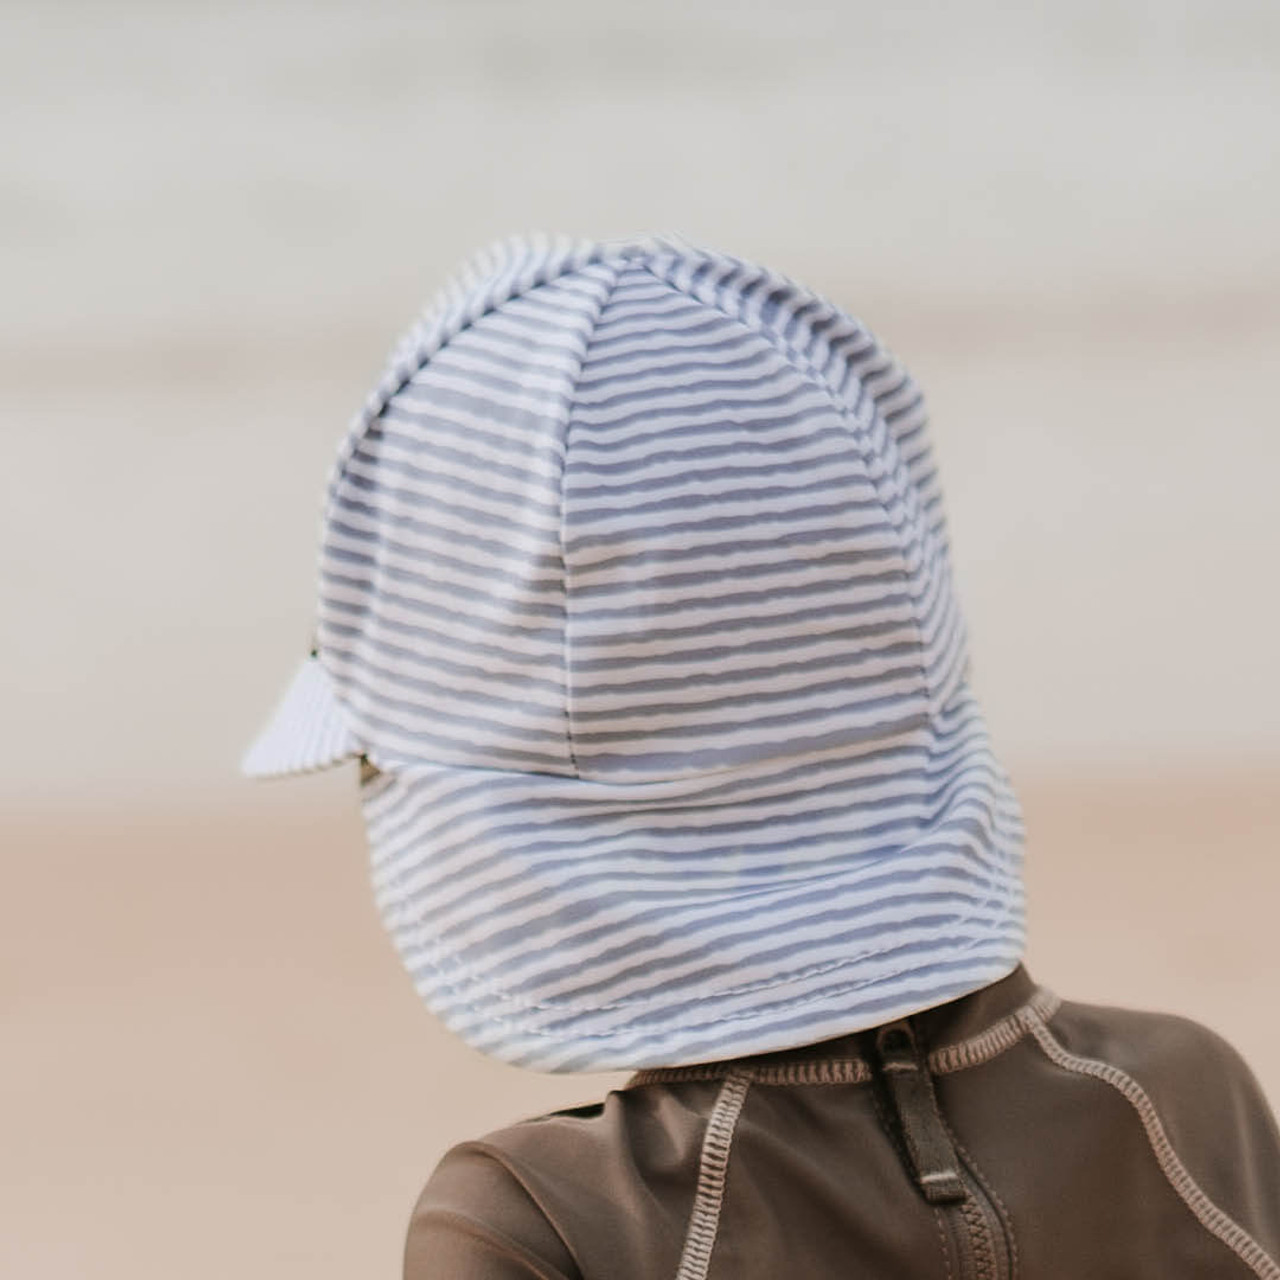 Bedhead Beach Legionnaire Flap Hat - Baby Blue Stripe at Baby Barn Discounts A beautiful nautical stripe that will look fantastic with any beach outfit. The best accessory for fun in the sun.